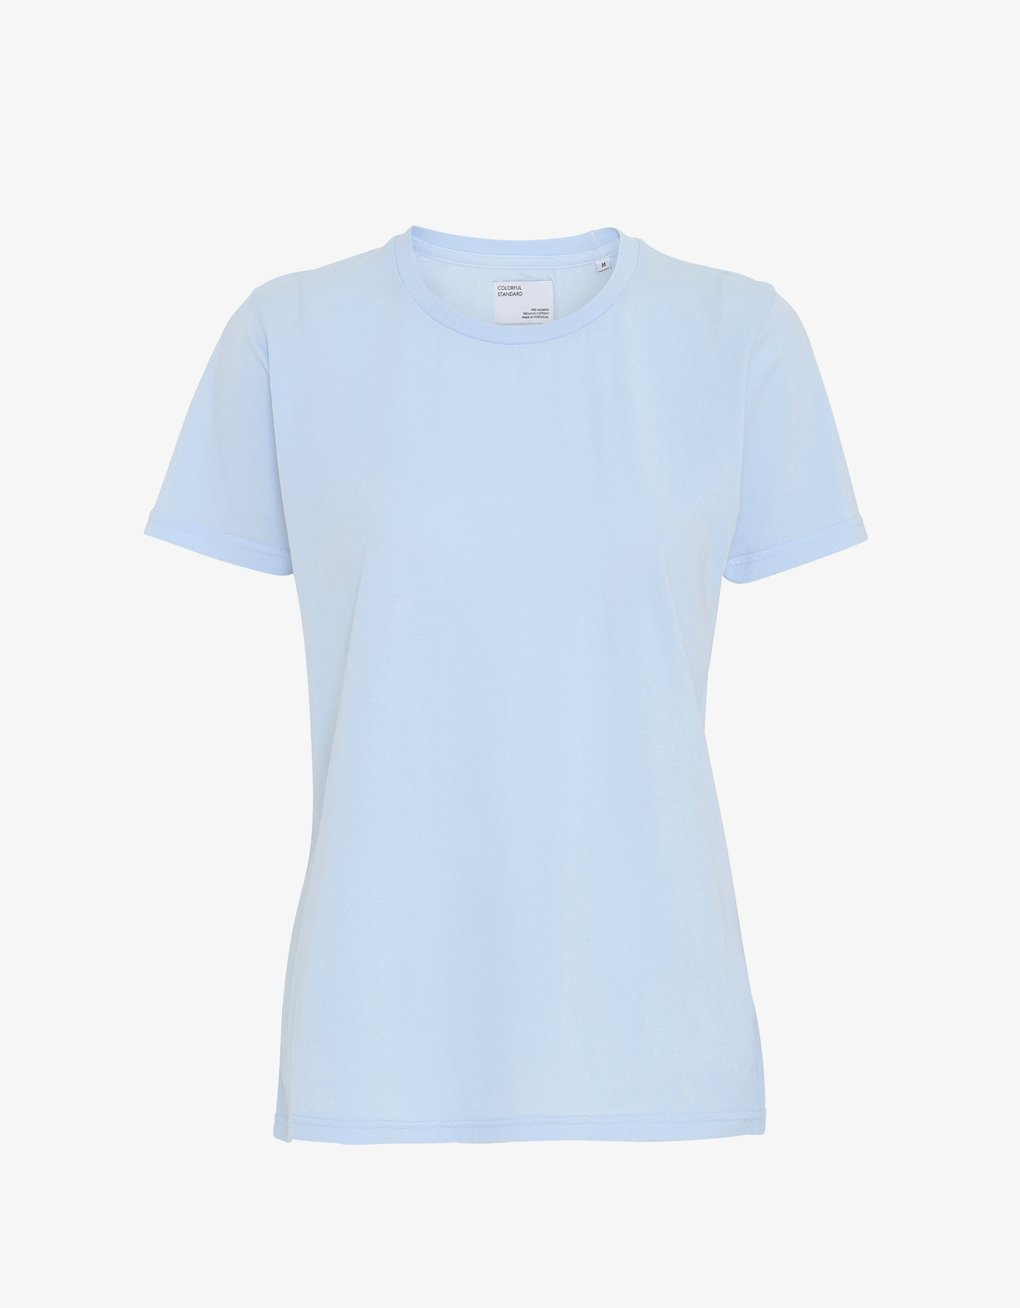 COLORFUL STANDARD | Women Organic T-shirt | Polar Blue - LONDØNWORKS